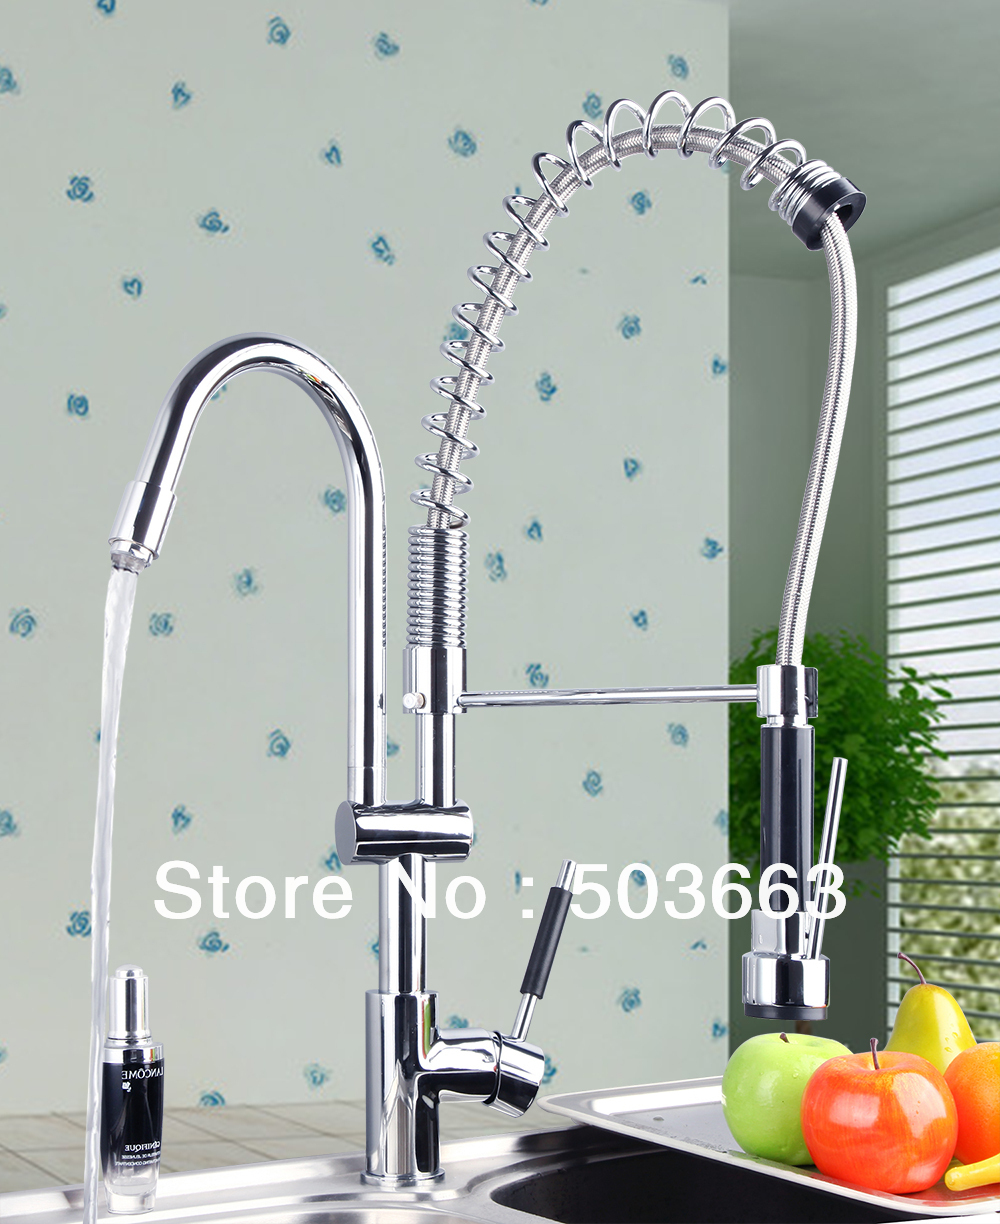 Double Handles Free Chrome Brass Water Kitchen Faucet Swivel Spout Pull Out Vessel Sink Single Handle Mixer Tap MF-268 new double handles free chrome brass water kitchen faucet swivel spout pull out vessel sink single handle mixer tap mf 279